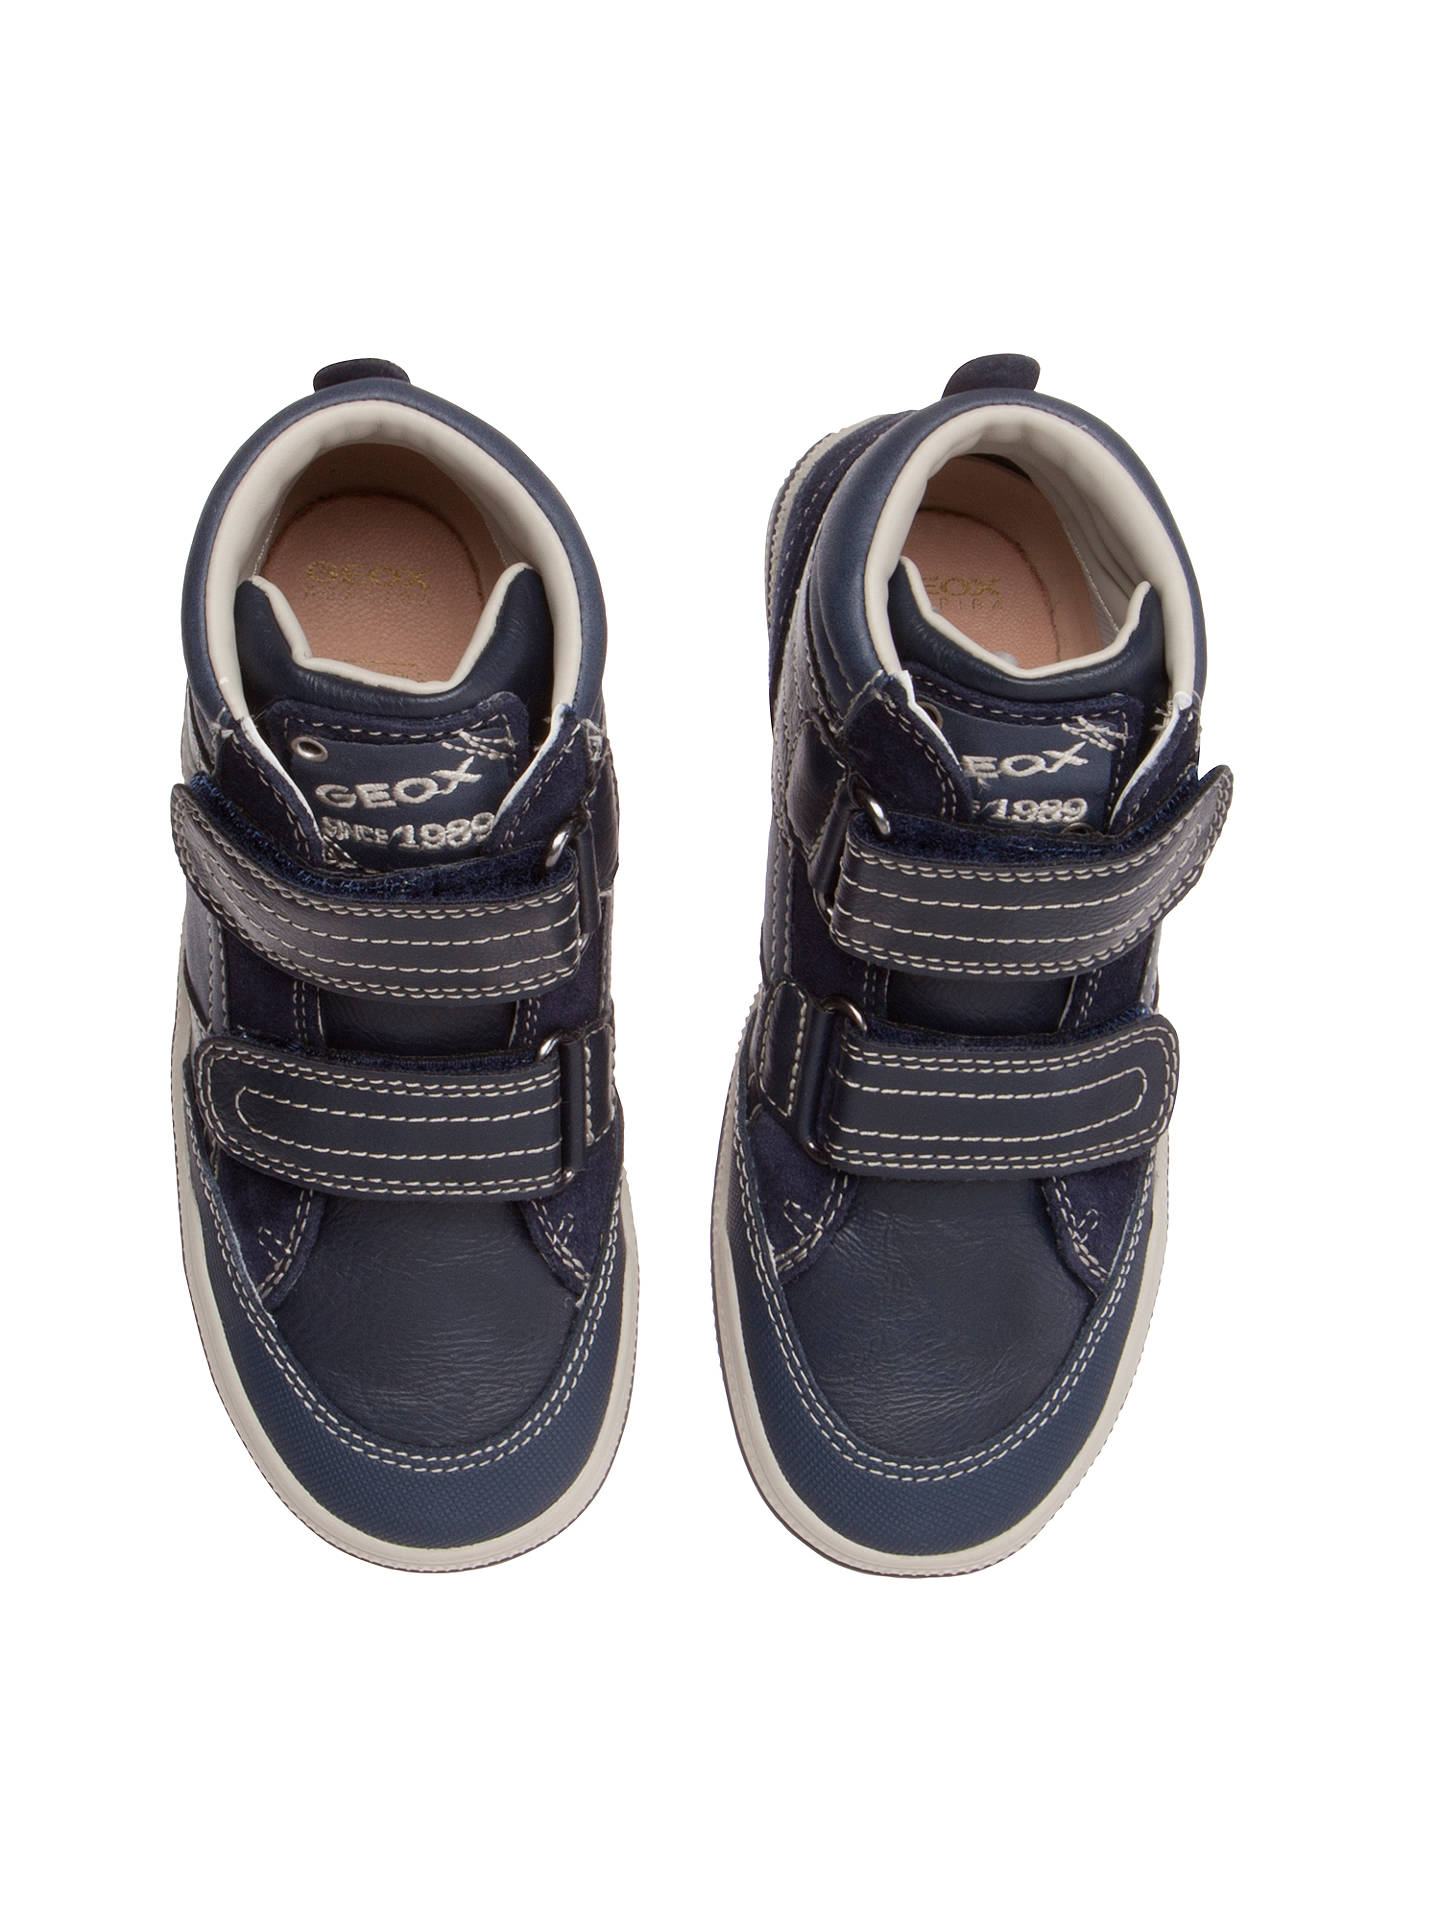 premium selection 3c882 f8859 Geox Elvis Leather Rip-Tape High-Top Trainers at John Lewis ...